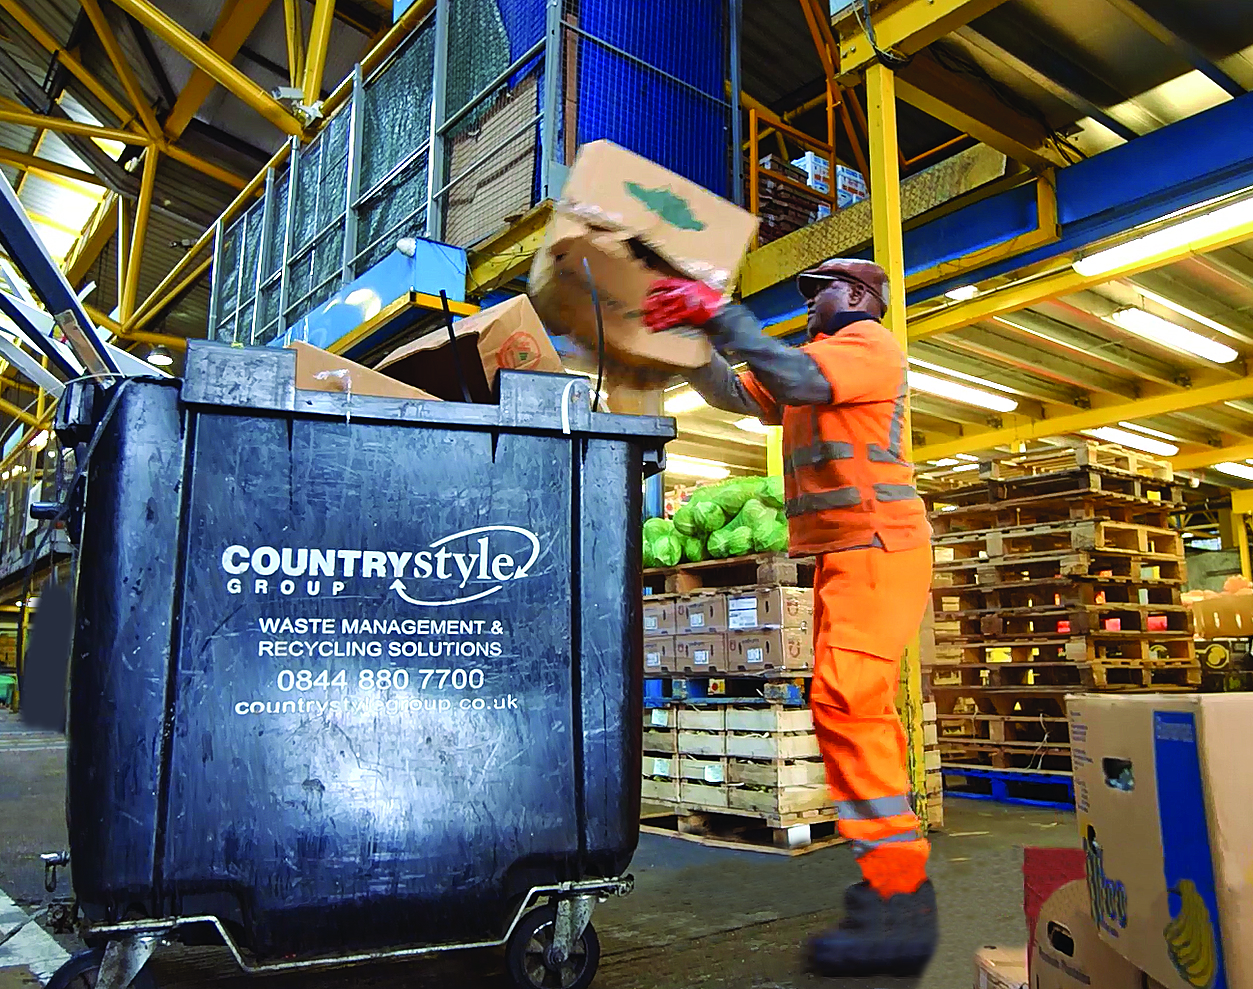 Countrystyle Recycling - Waste management services